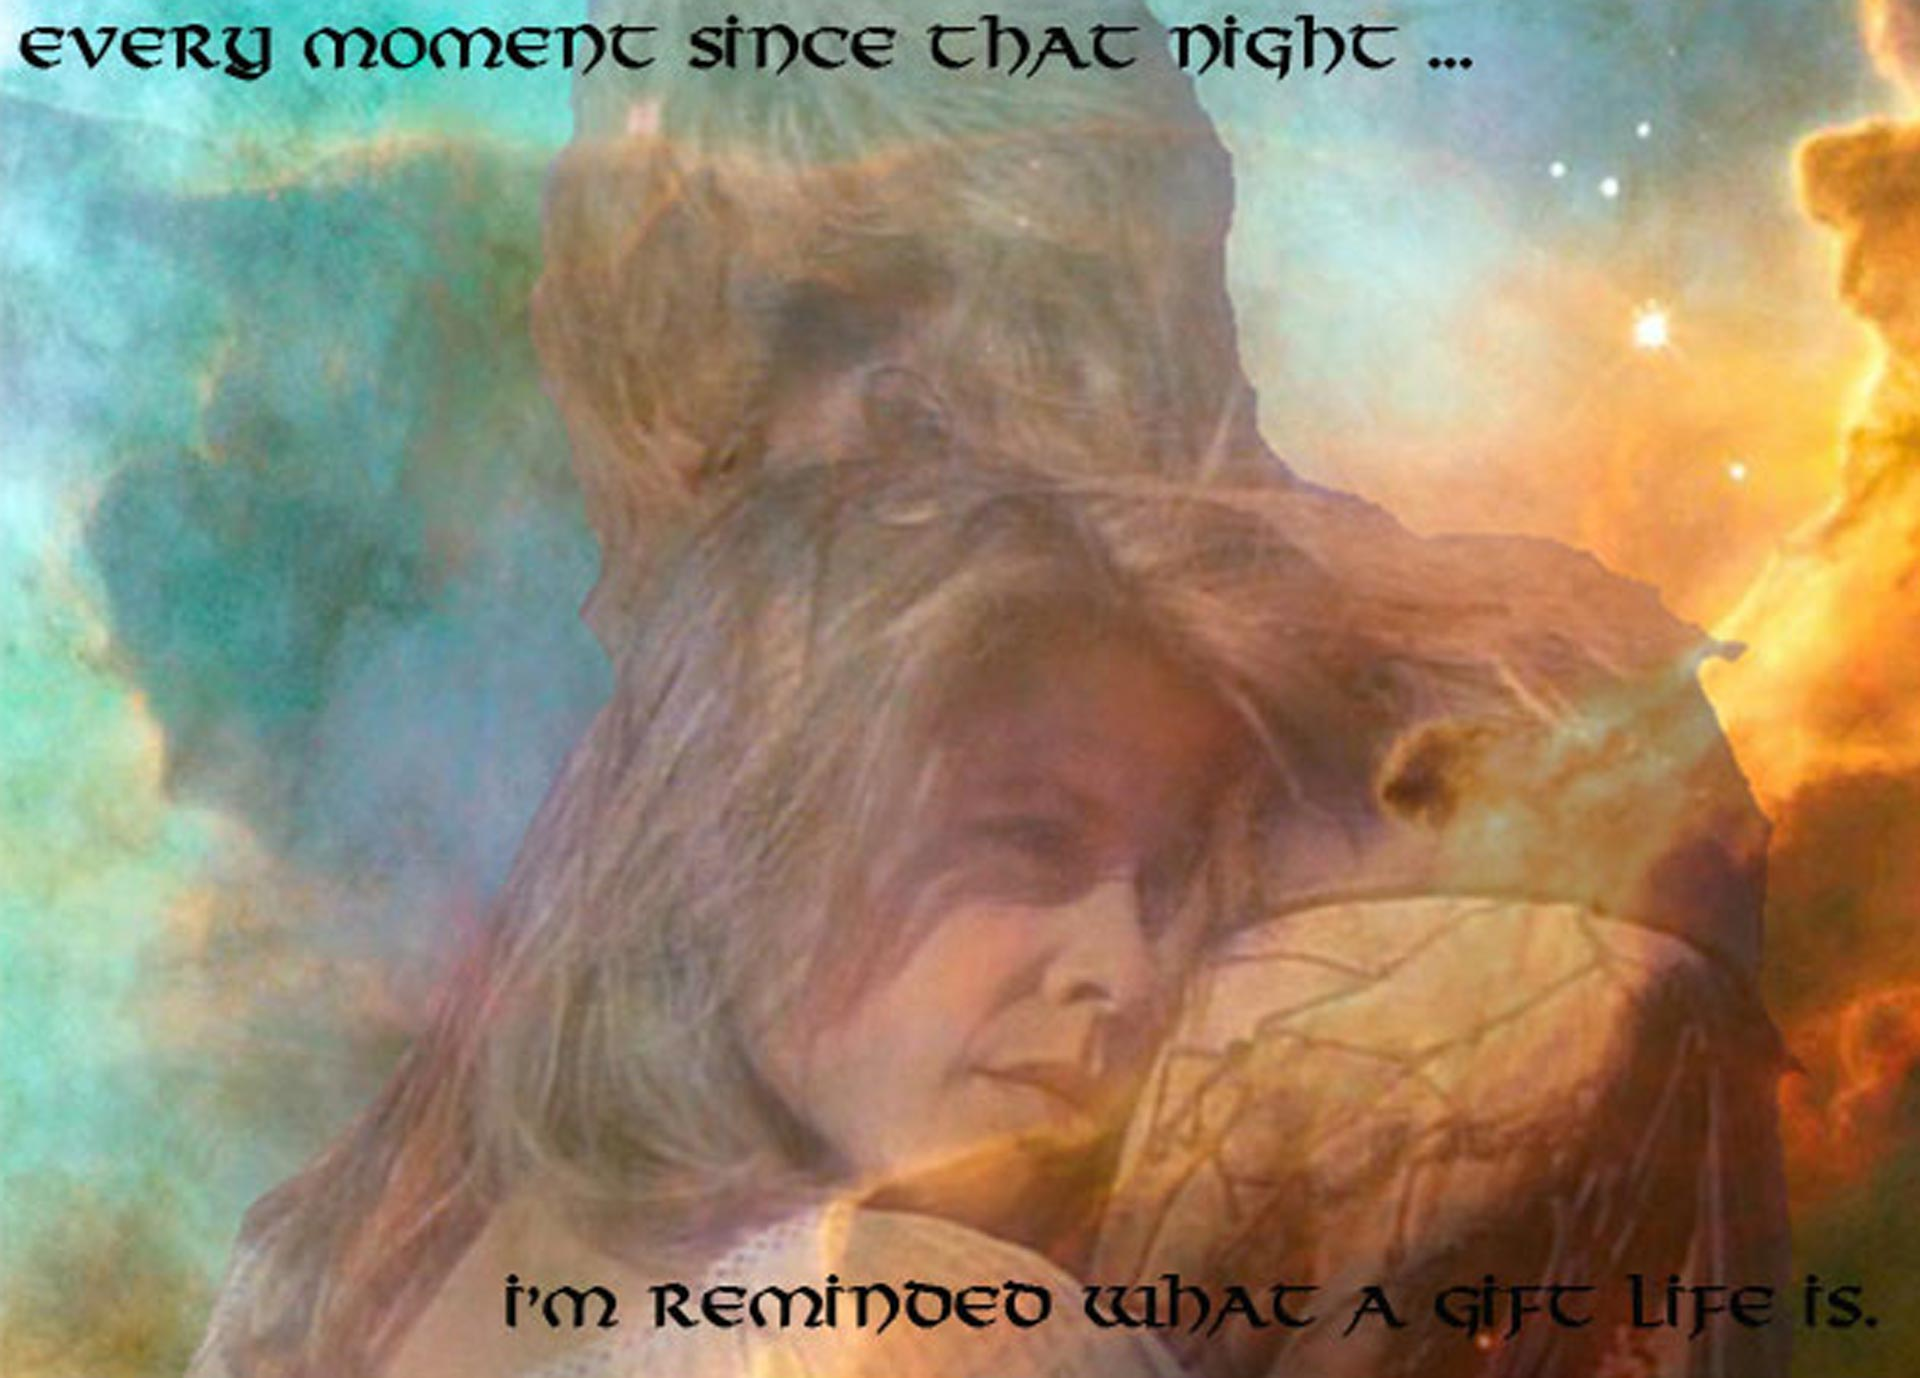 The Omega Swan nebula, Vincent and Catherine in an embrace. Text reads: Ever since that night, I'm reminded what a gift life is